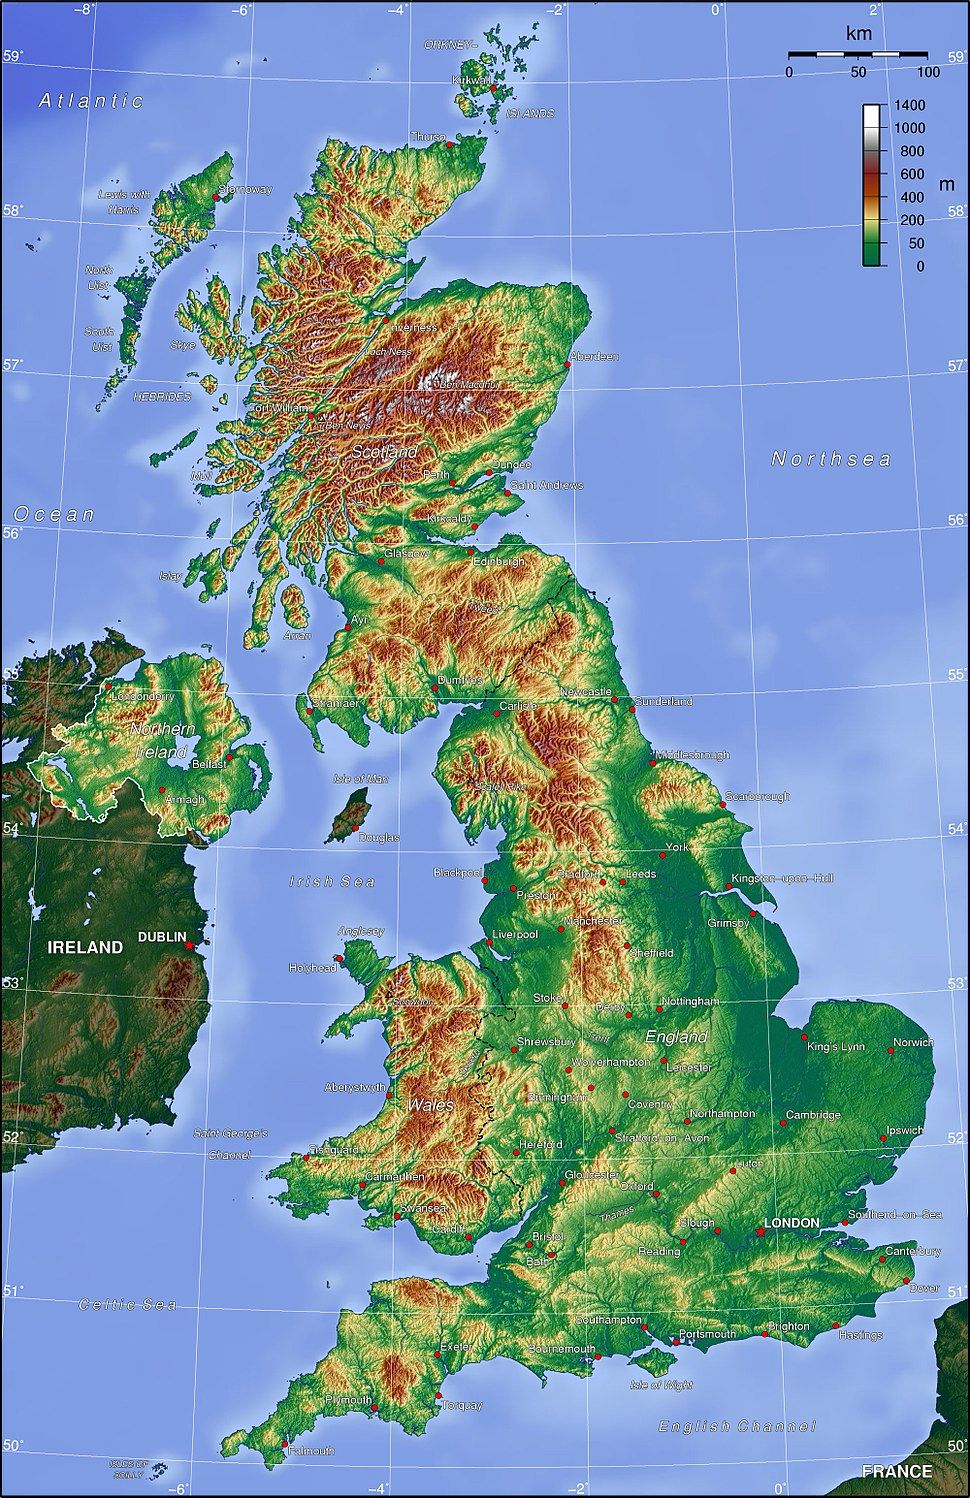 Map of United Kingdom showing hilly regions to north and west, and flattest region in the south-east.